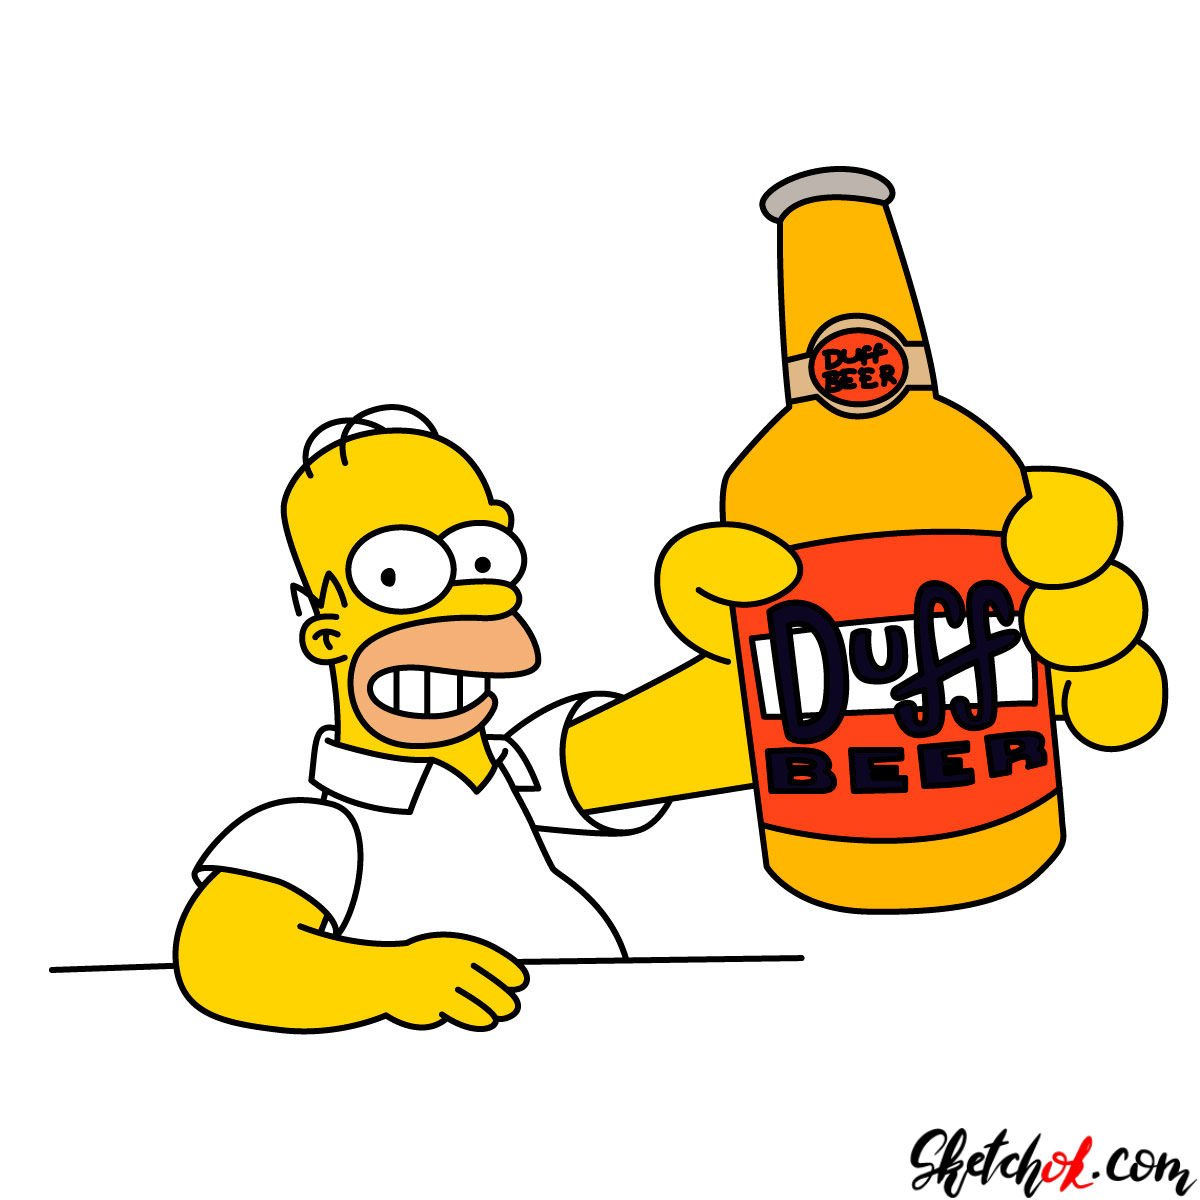 How to draw Homer with a Duff beer bottle - coloring